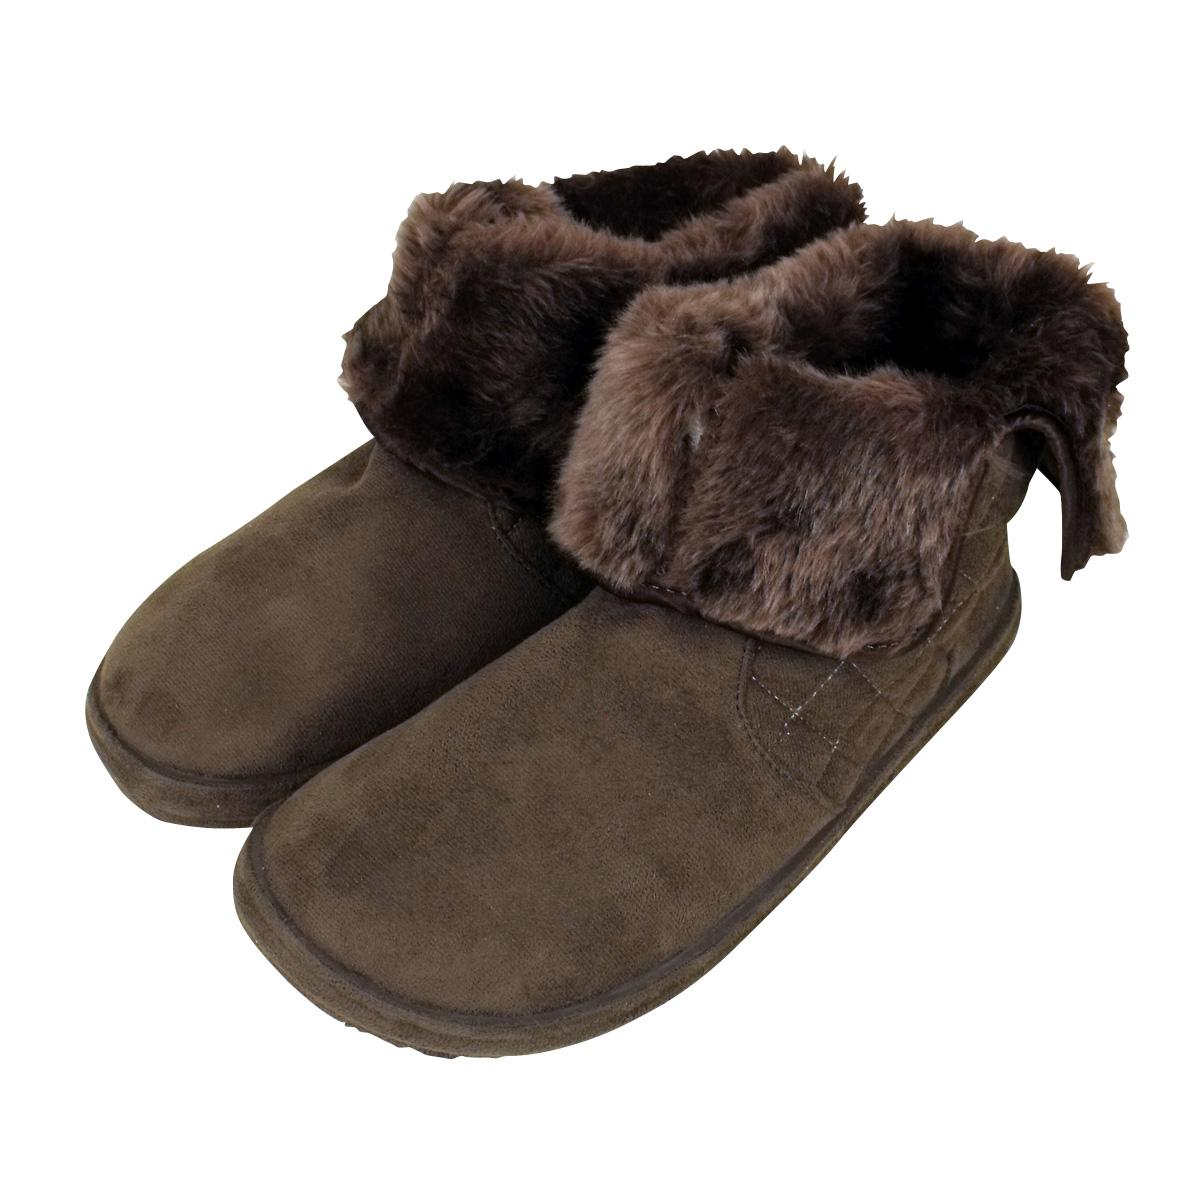 slippers womens faux suede ankle boot quilted bootee